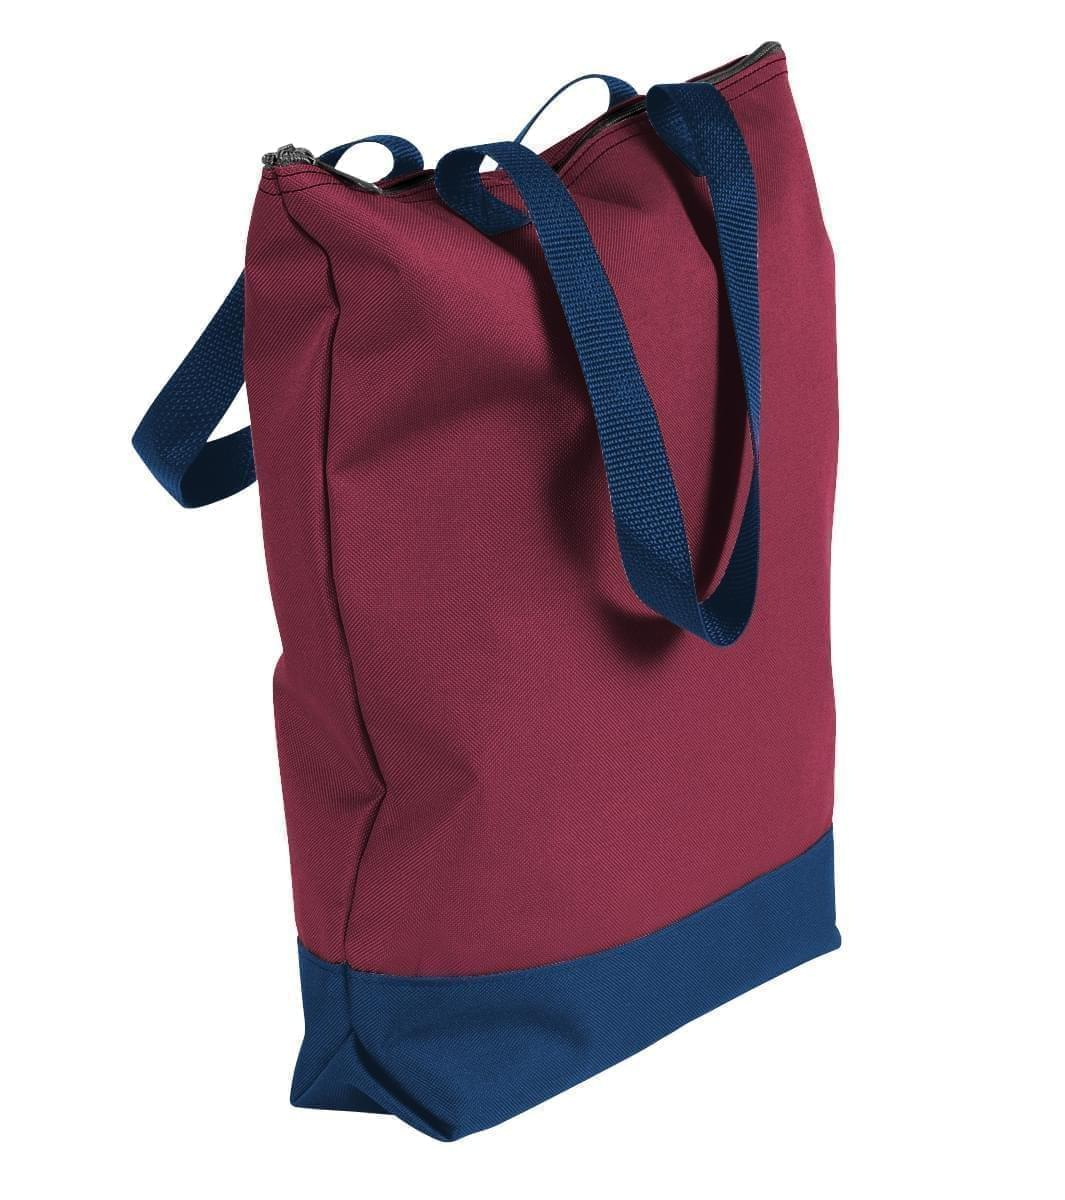 USA Made Poly Notebook Tote Bags, Burgundy-Navy, 1AAMX1UAQZ